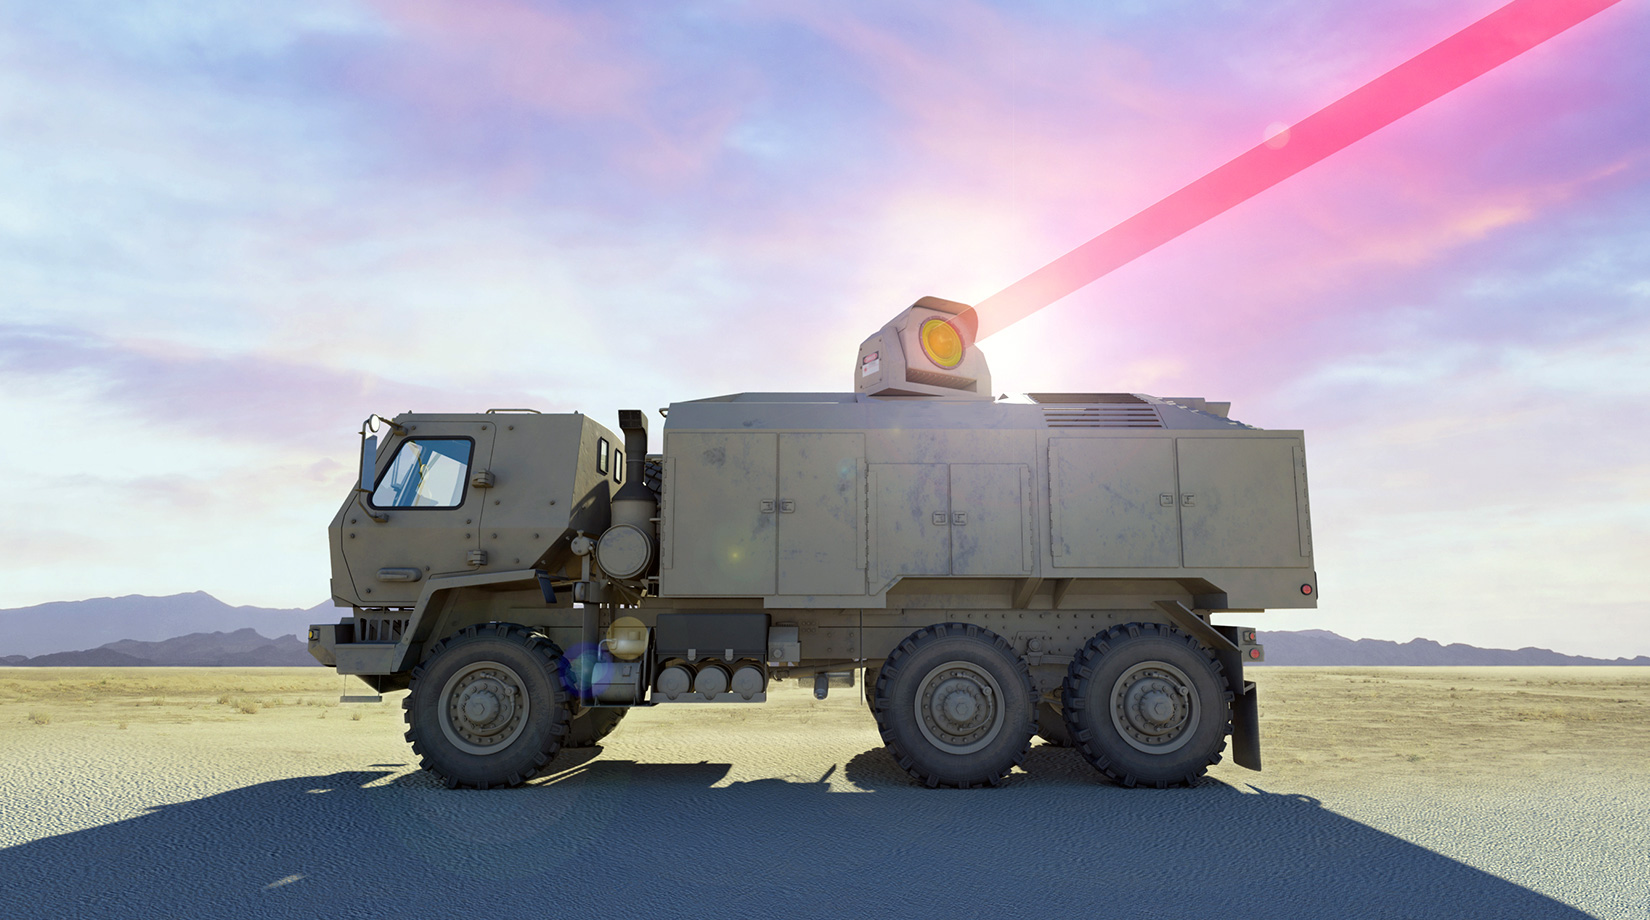 Dynetics to build and increase power of U.S. Army laser weapons thumbnail image